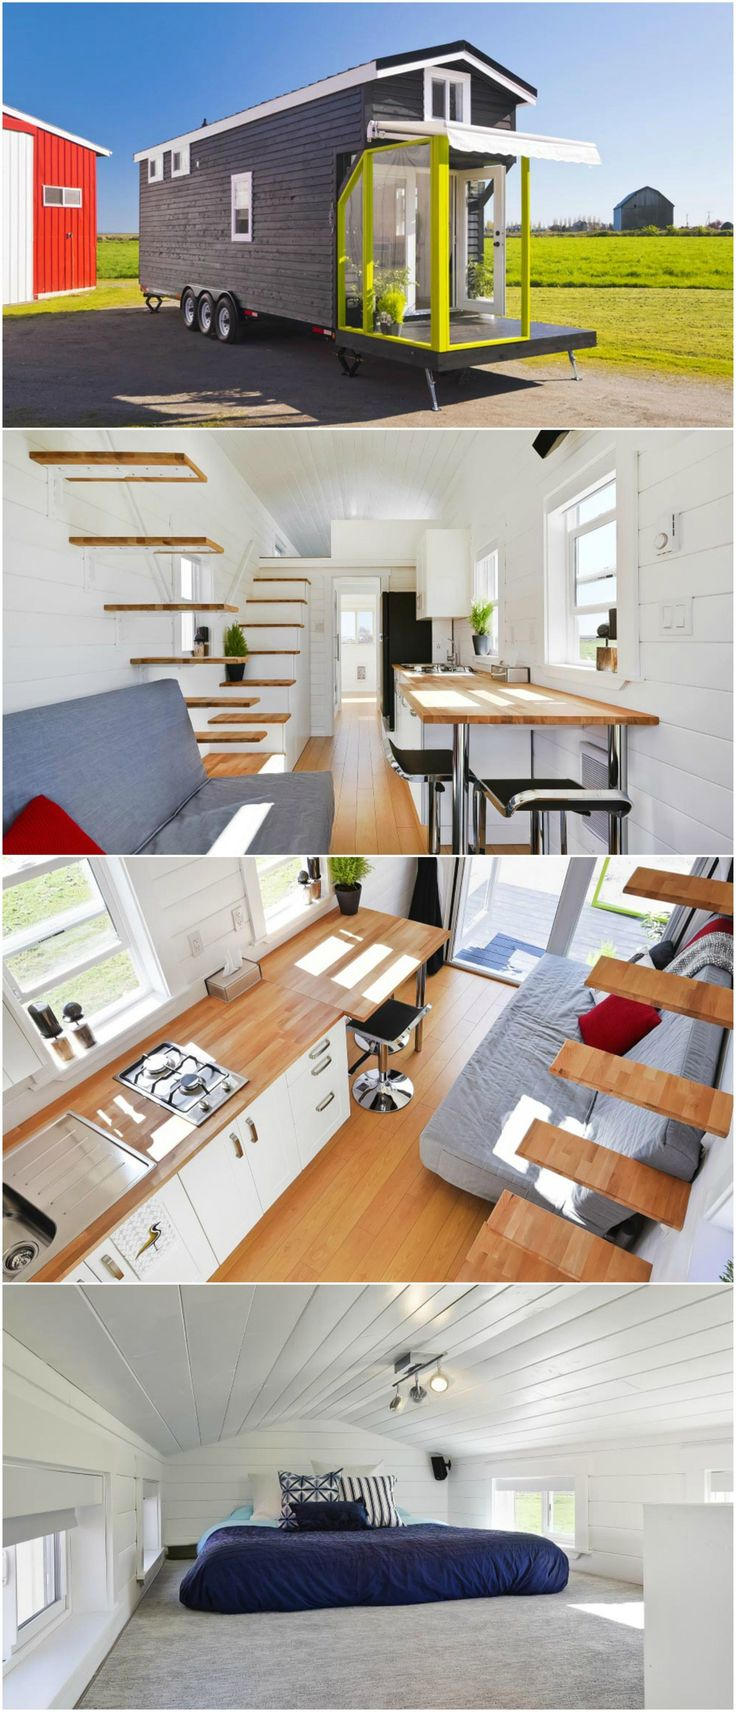 This custom tiny house is built by Mint Tiny Homes. It measures 310 sq.ft. between the main floor and two lofts. One loft is accessed by floating stairs and the other loft is accessed by storage stairs that offer a large amount of cabinet space. The kitchen includes a two burner stove, upper cabinets, and an apartment size refrigerator. The bathroom has a laundry area and glass enclosed corner shower. #tinyhousekitchenstorage